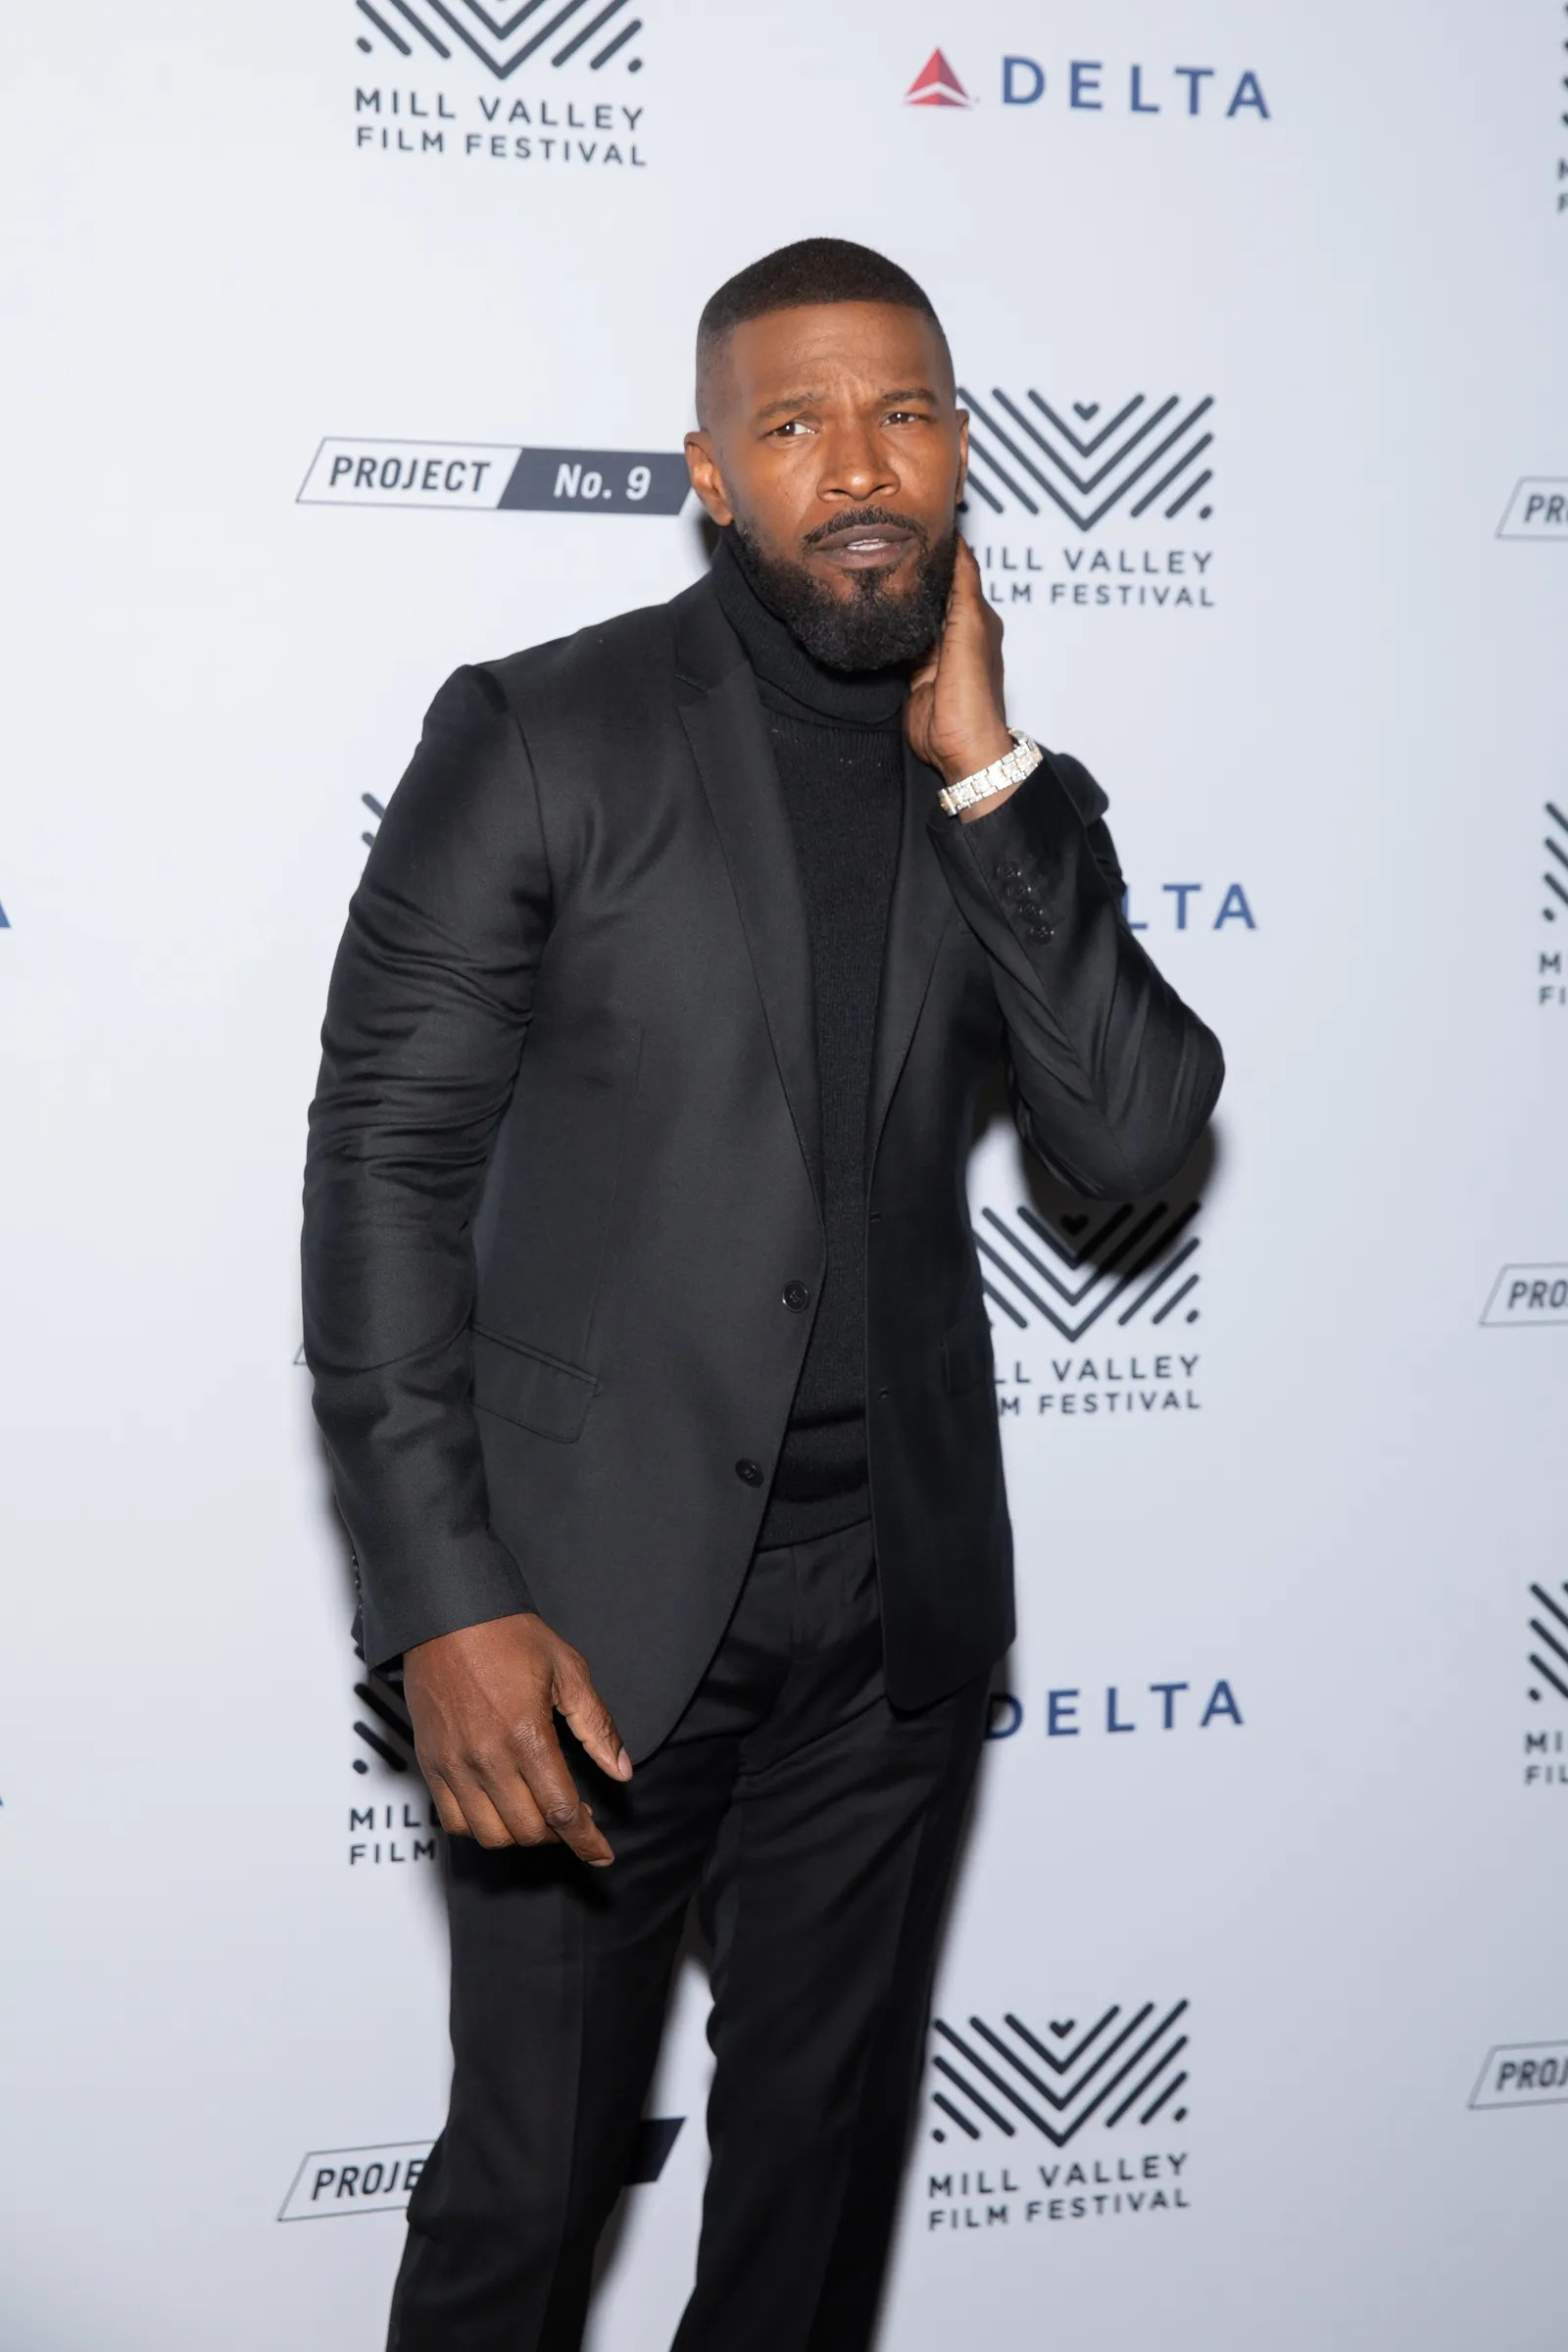 Jamie Foxx with a beard wearing all black raising one eyebrow and touching his cheek